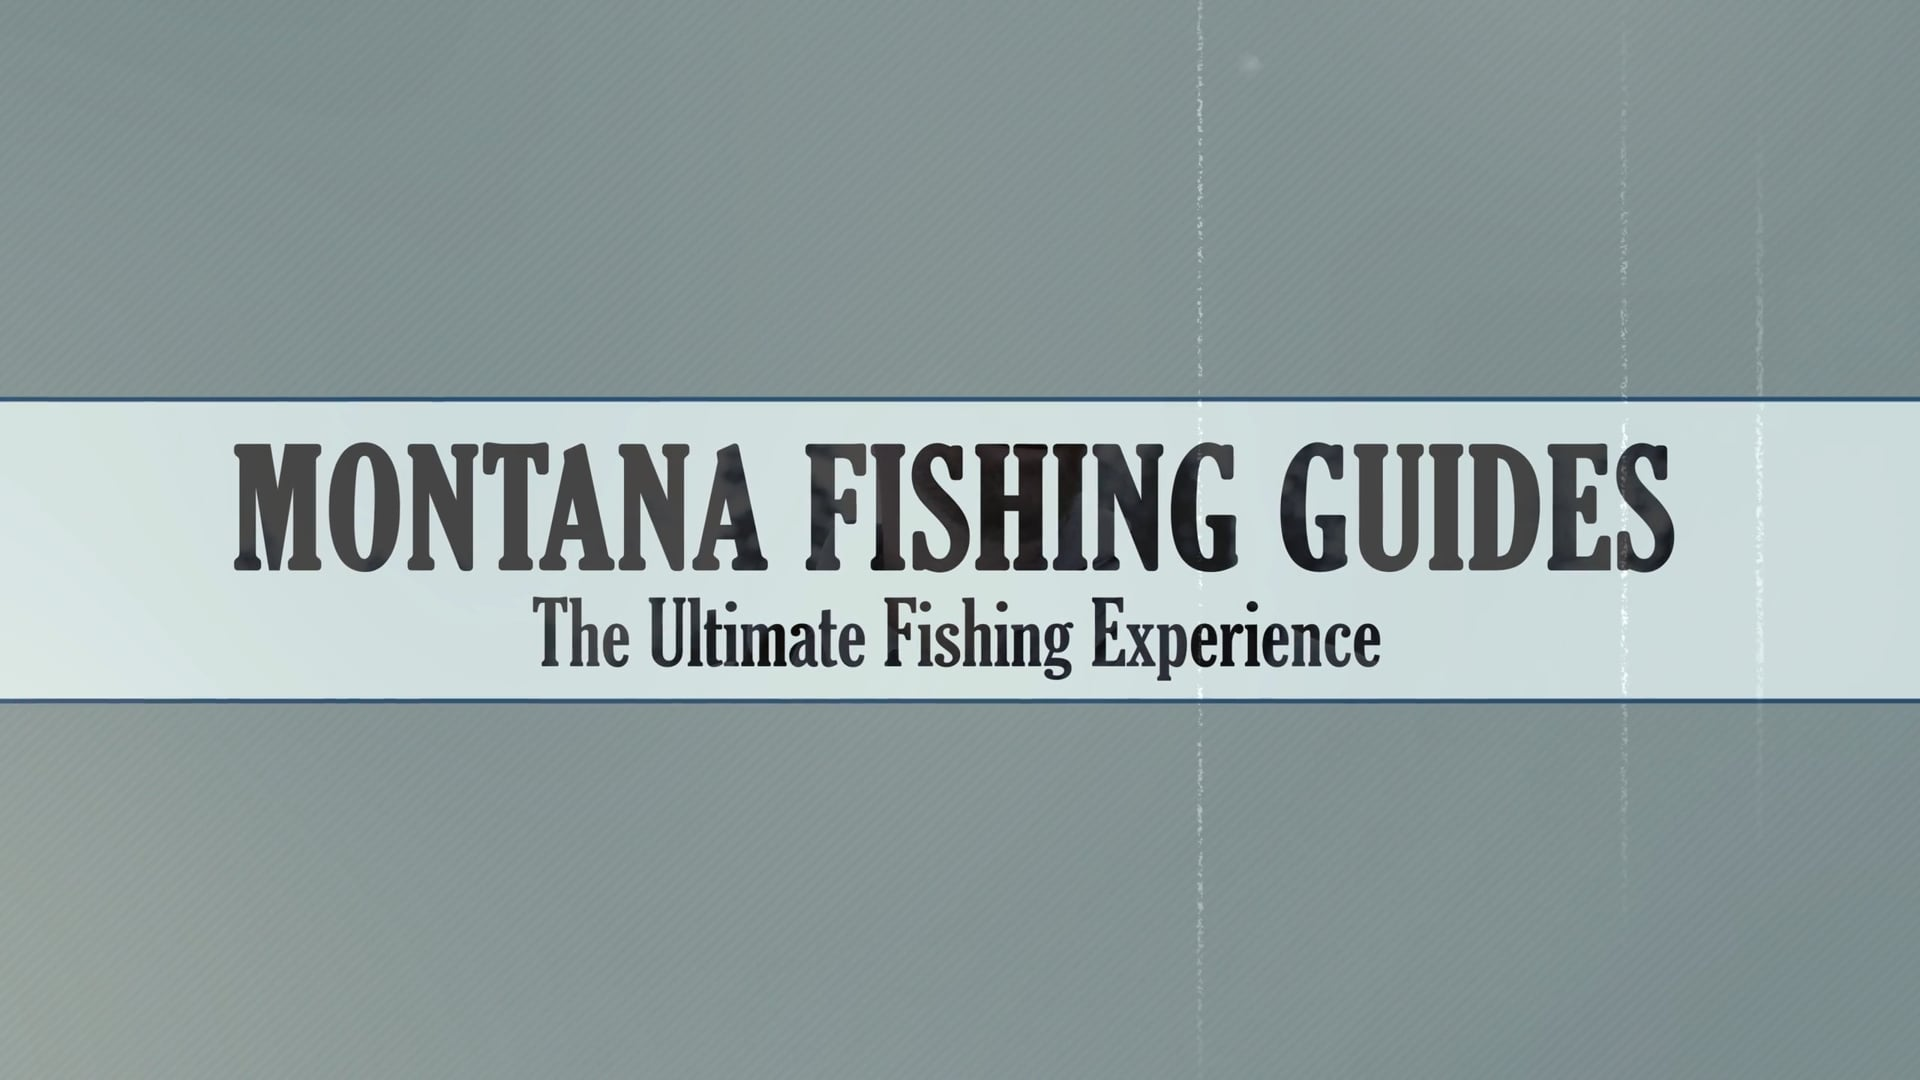 Montana Fishing Guides: The Ultimate Fishing Experience